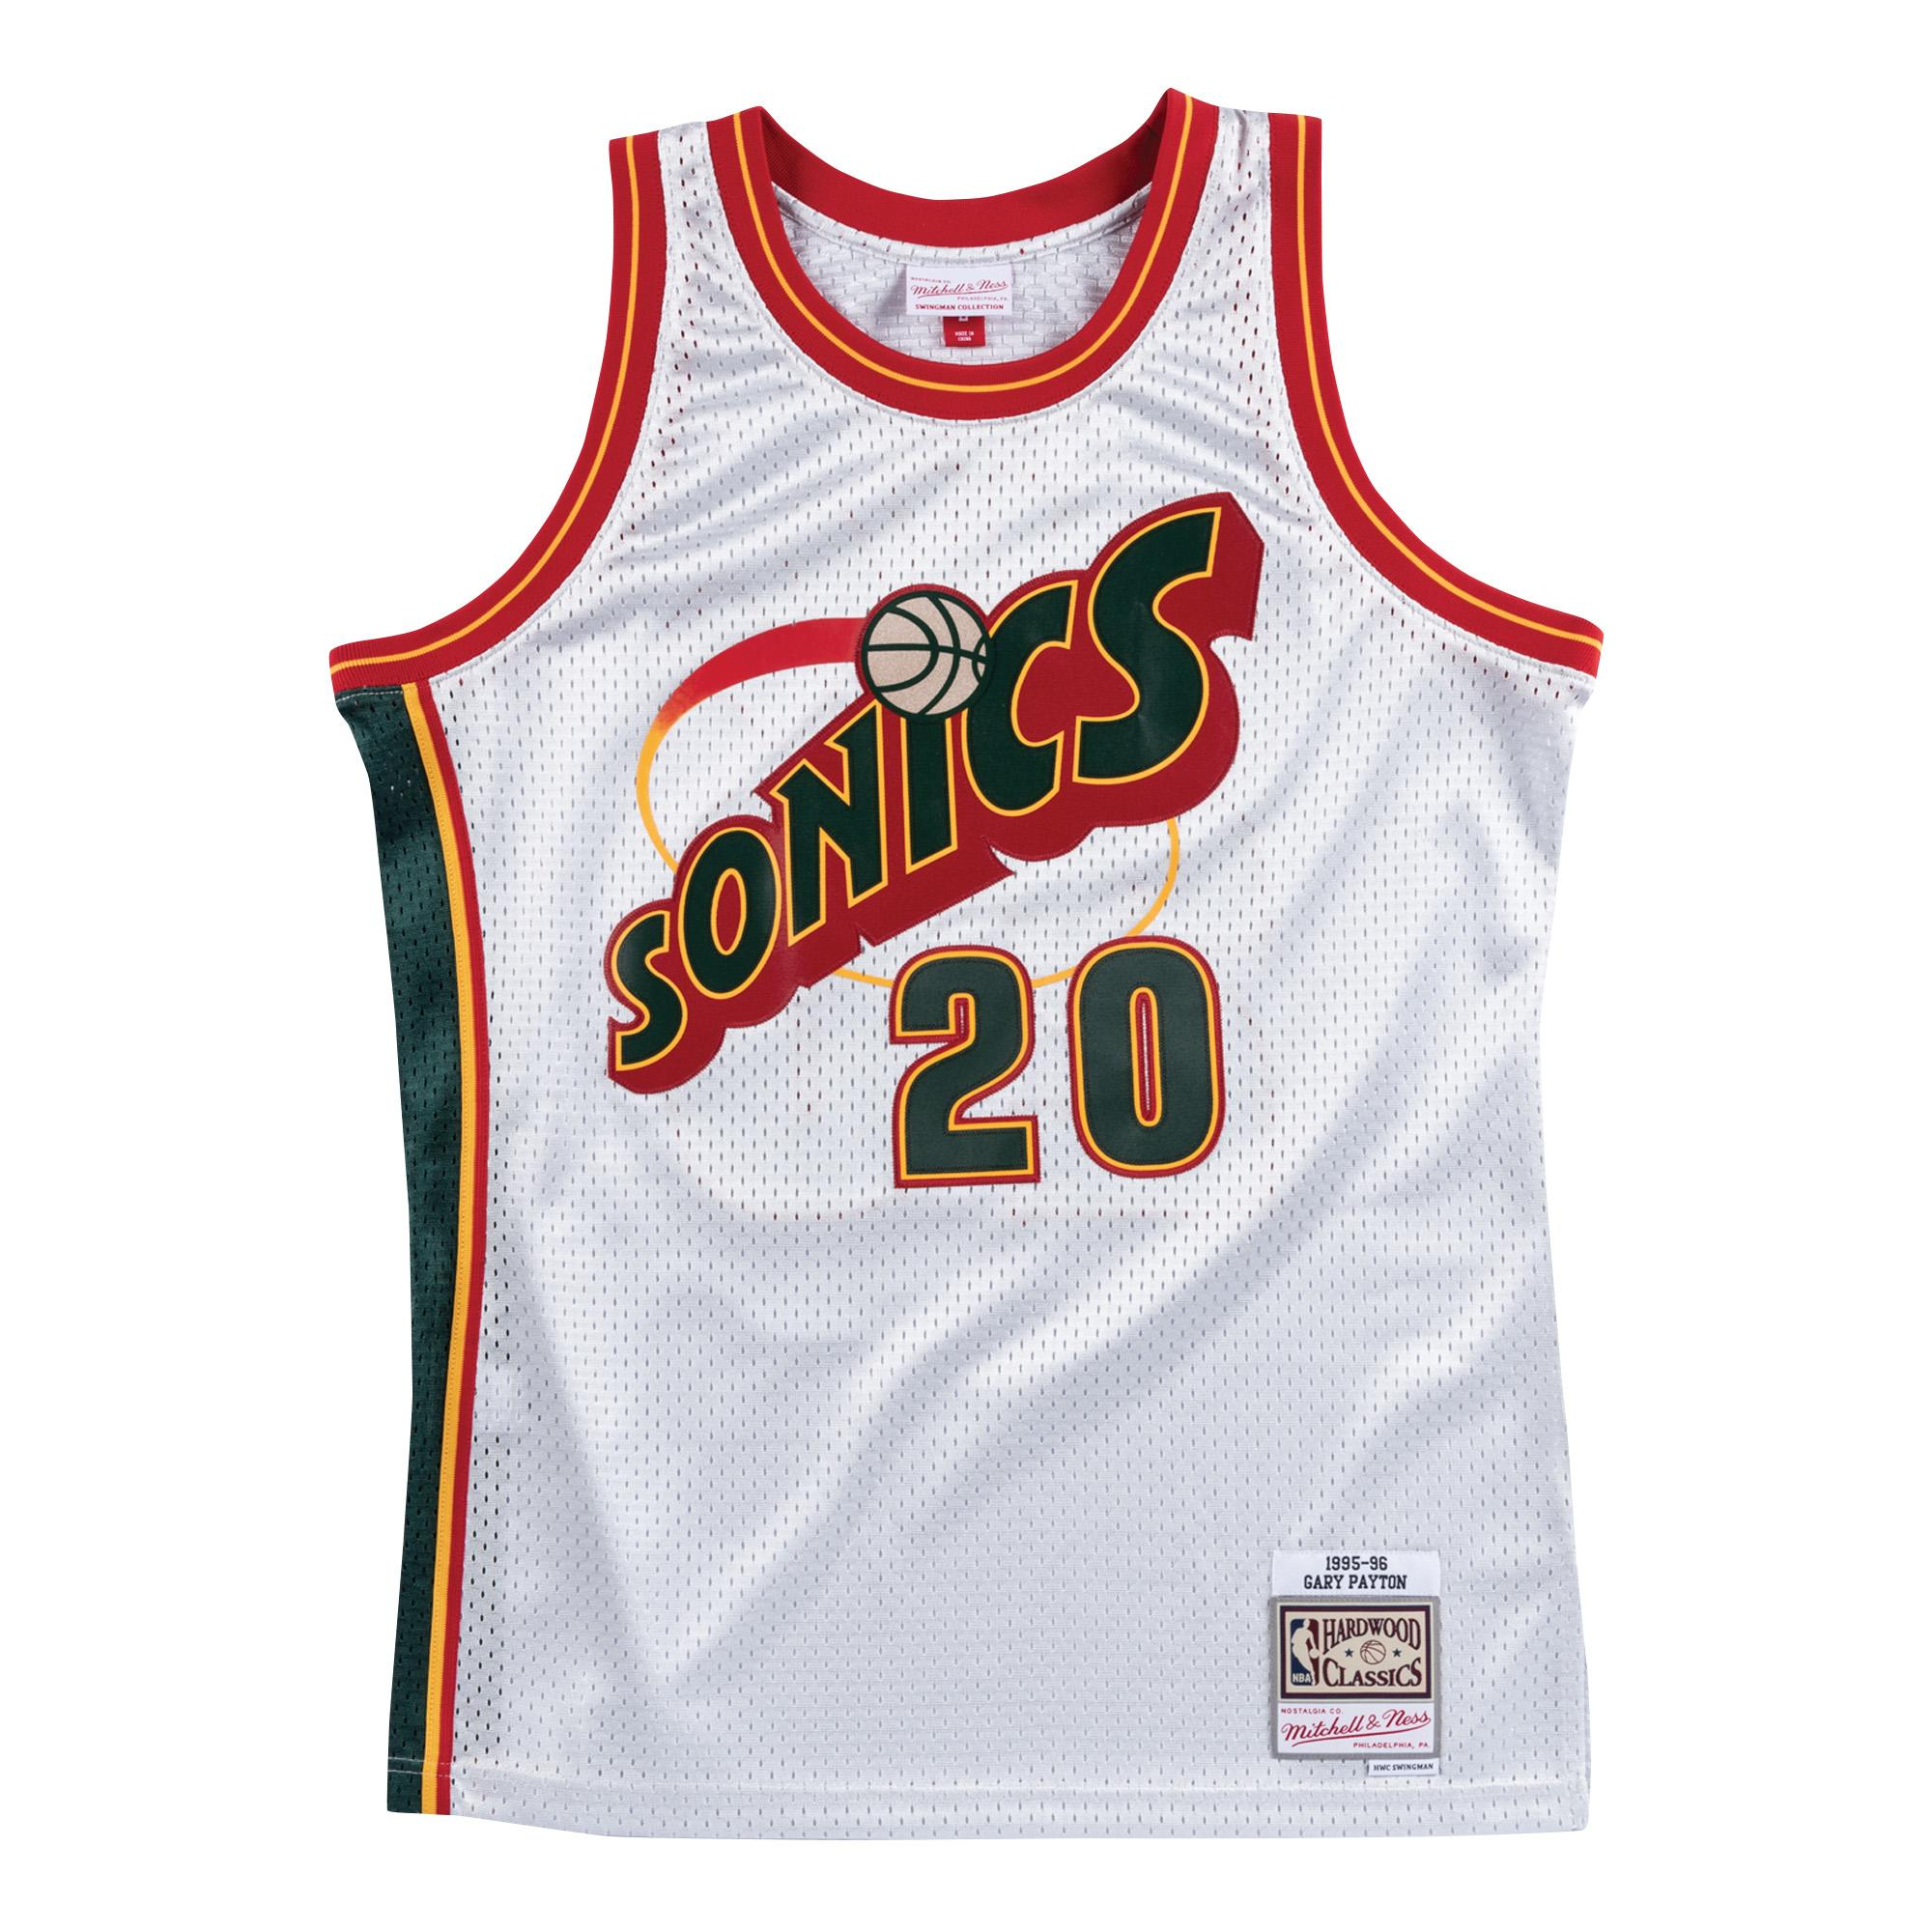 b45e693ed12b0 Platinum Swingman Jersey - Gary Payton. SHOP NOW